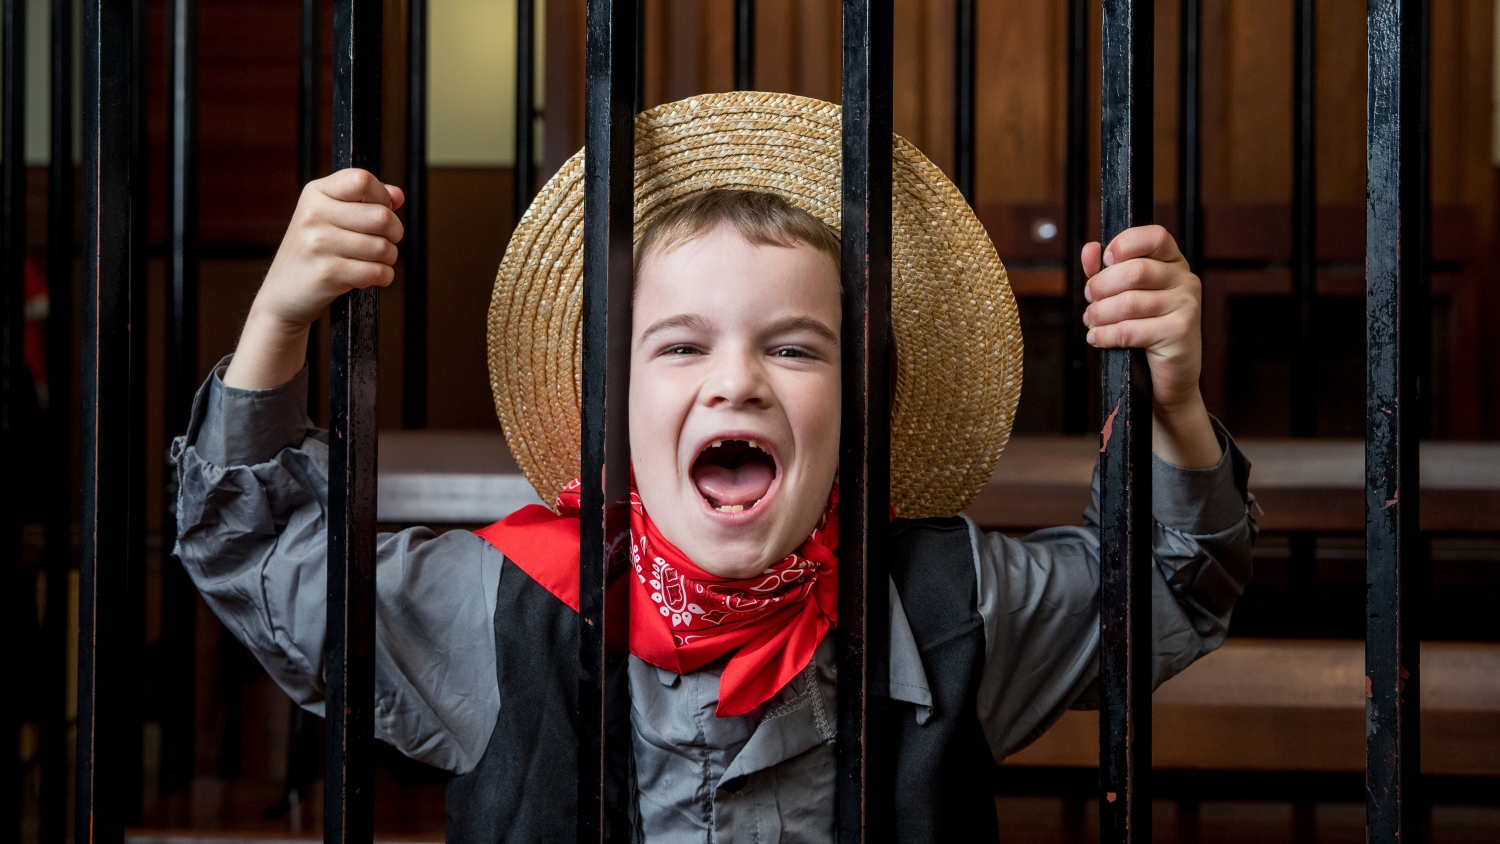 Laughing child in costume behind bars.